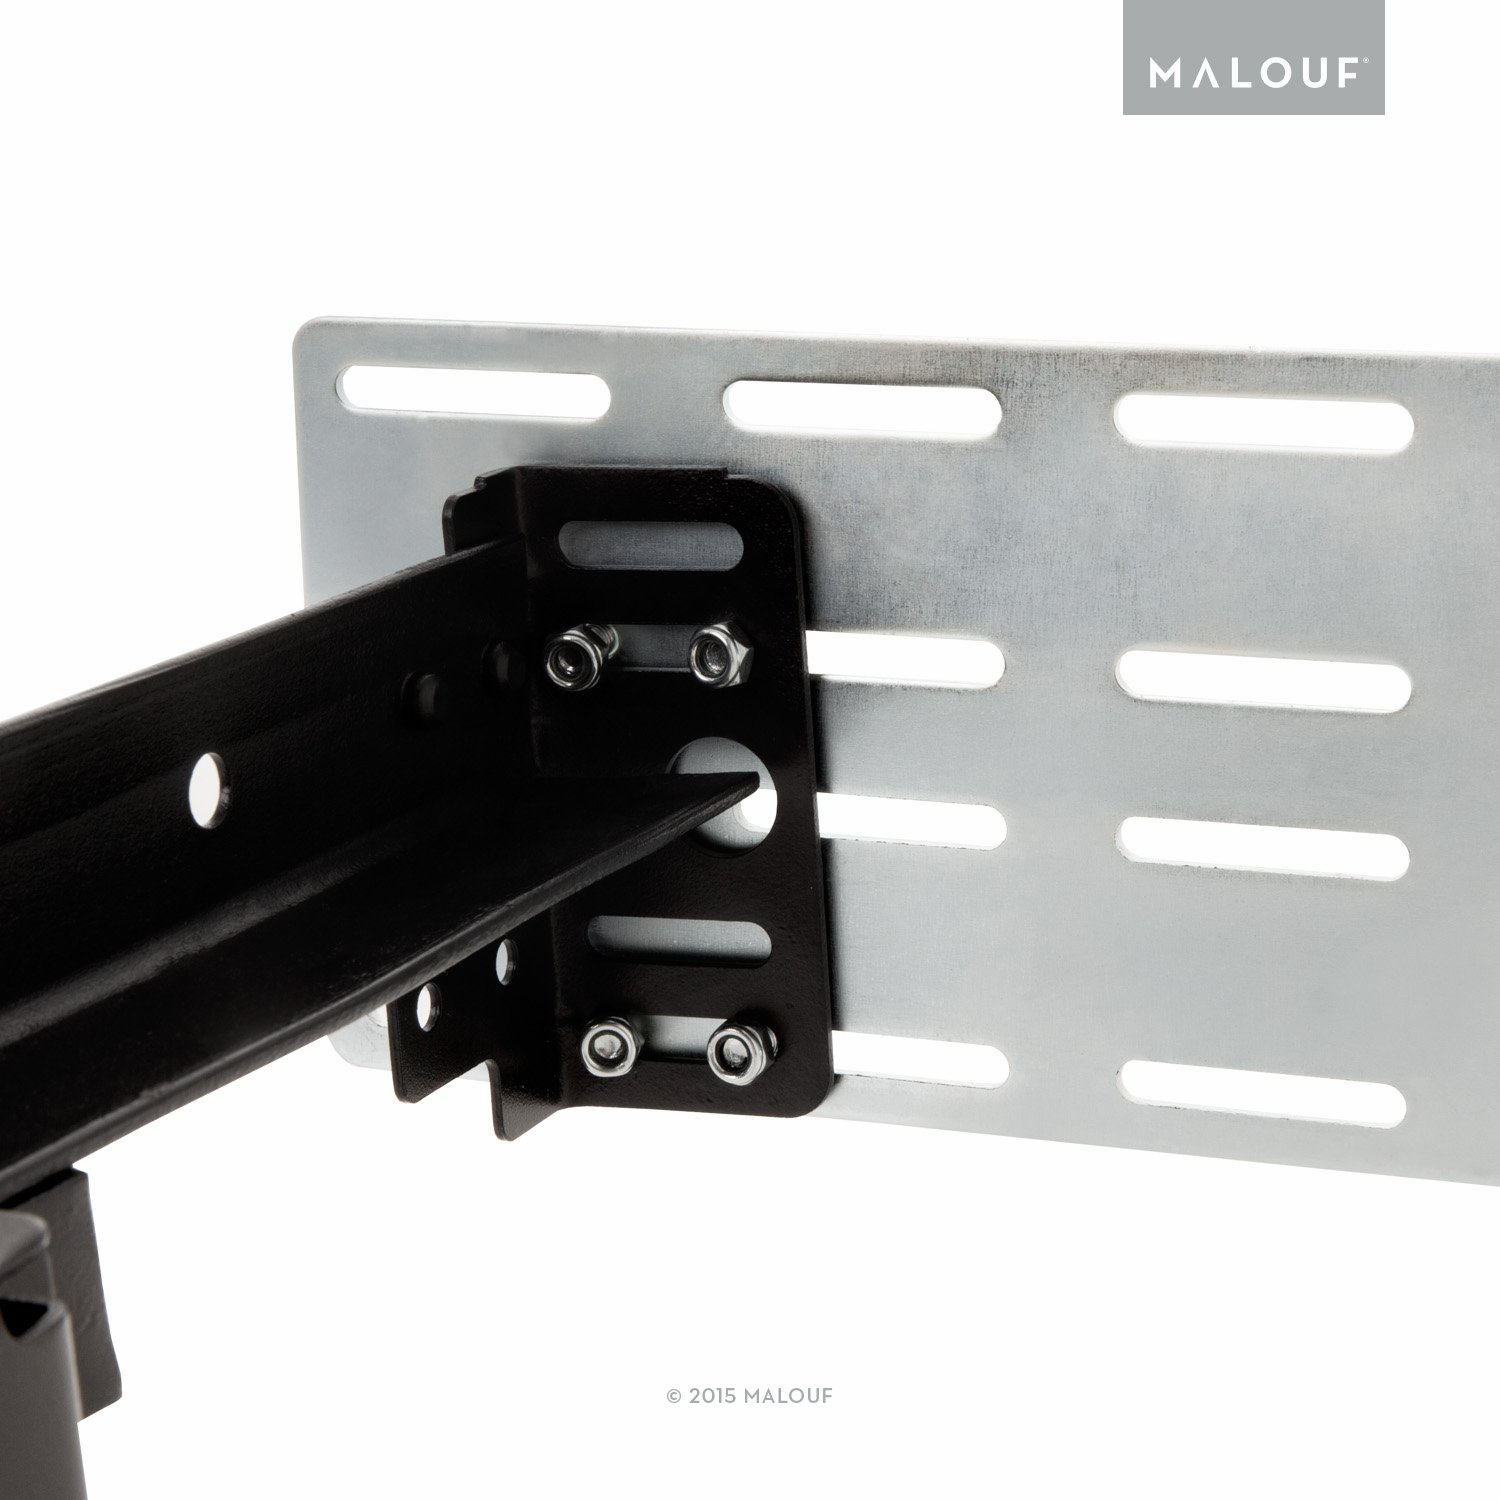 Amazoncom STRUCTURES by Malouf King Bed Frame Headboard Bracket